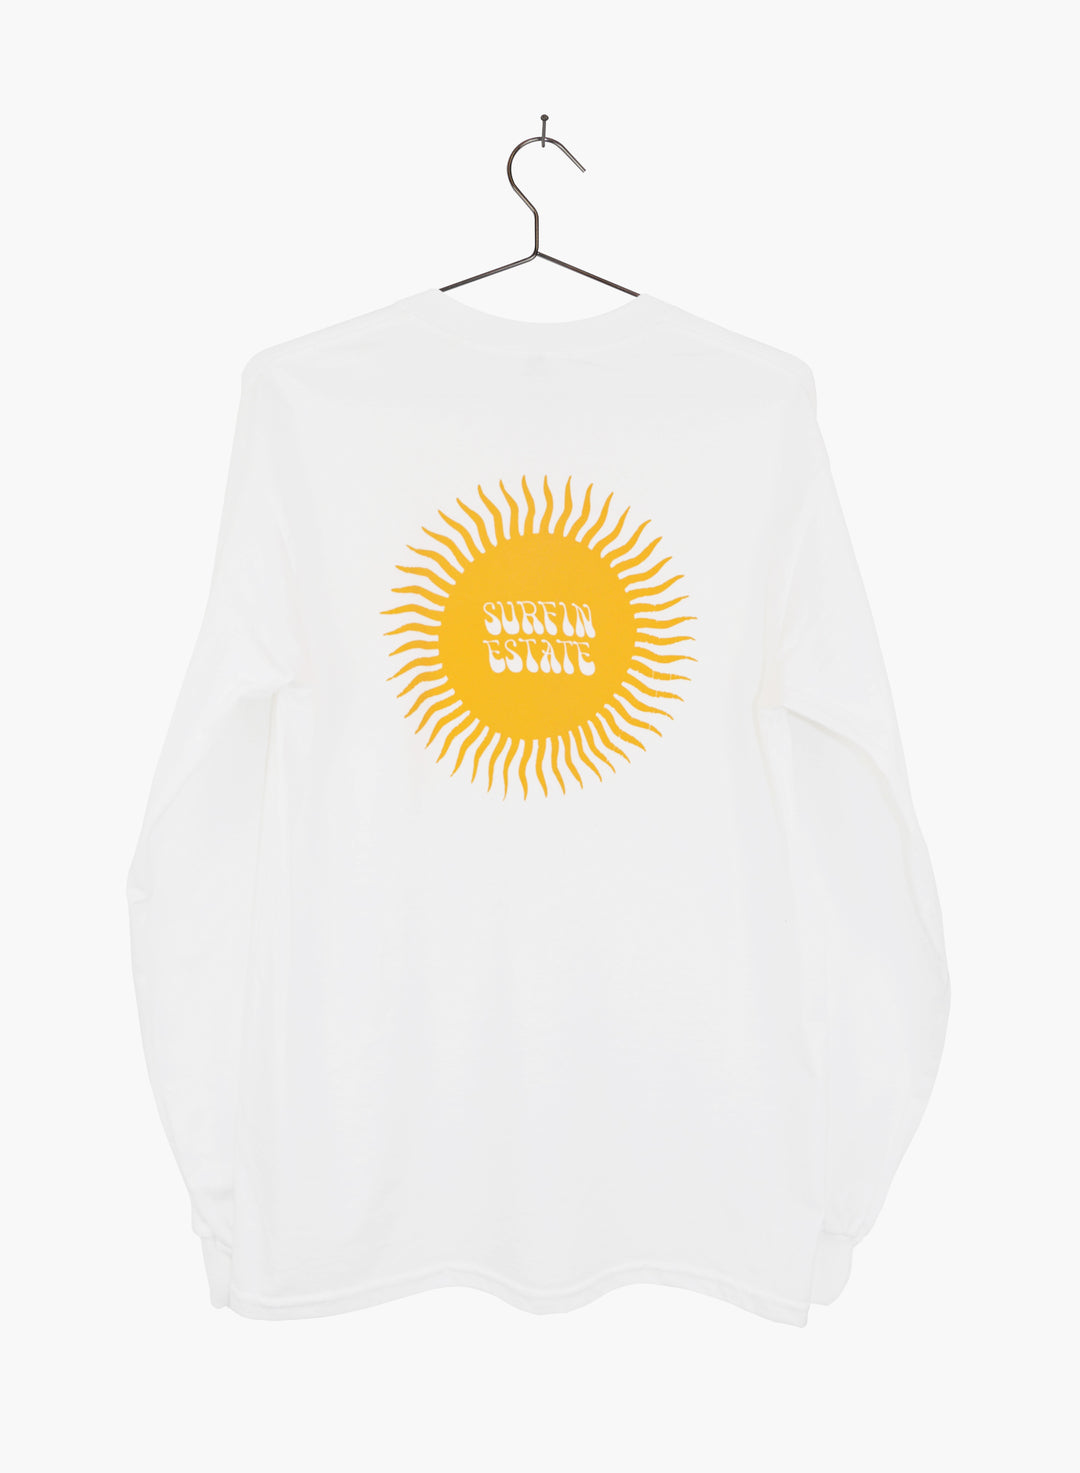 Surfin Estate white long sleeve t shirt  with sunshine logo hand screen print.